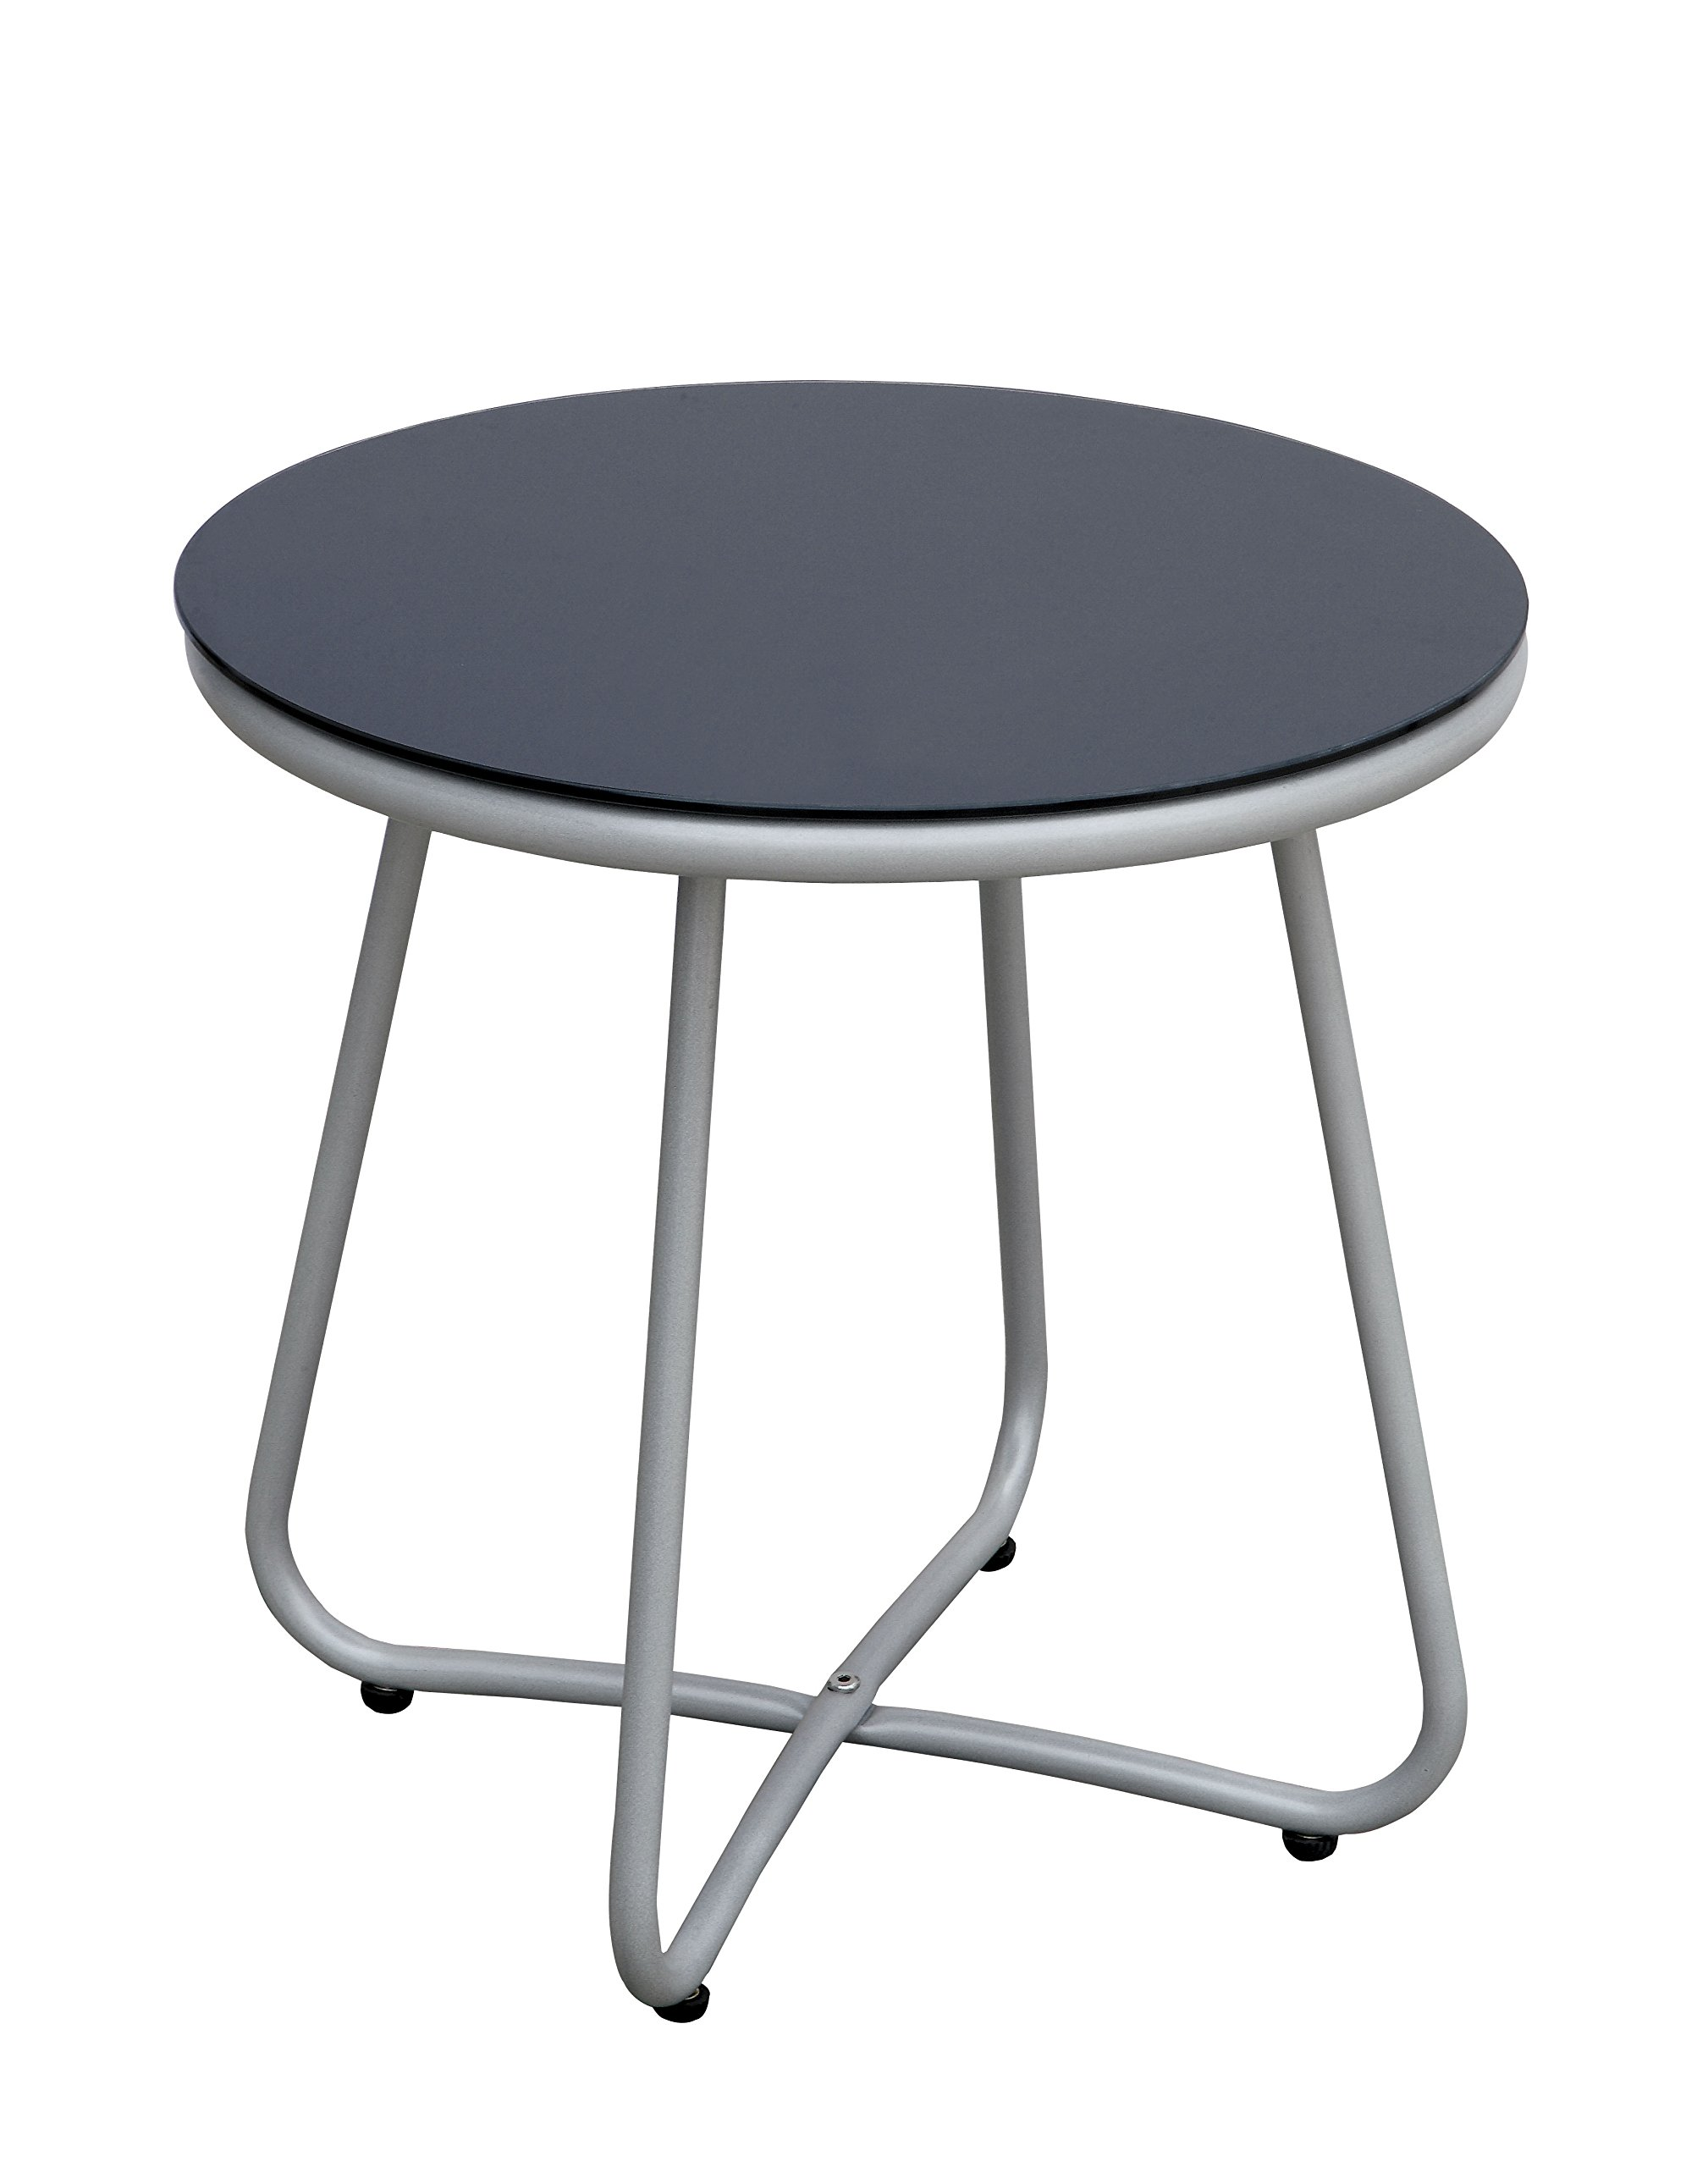 24/7 Shop at Home 247SHOPATHOME IDF-OC2120-T Myami Outdoor Side Table, Grey - Contemporary style Sturdy aluminum frame with curved legs 5mm tempered glass top - patio-tables, patio-furniture, patio - 71YlE98oAeL -